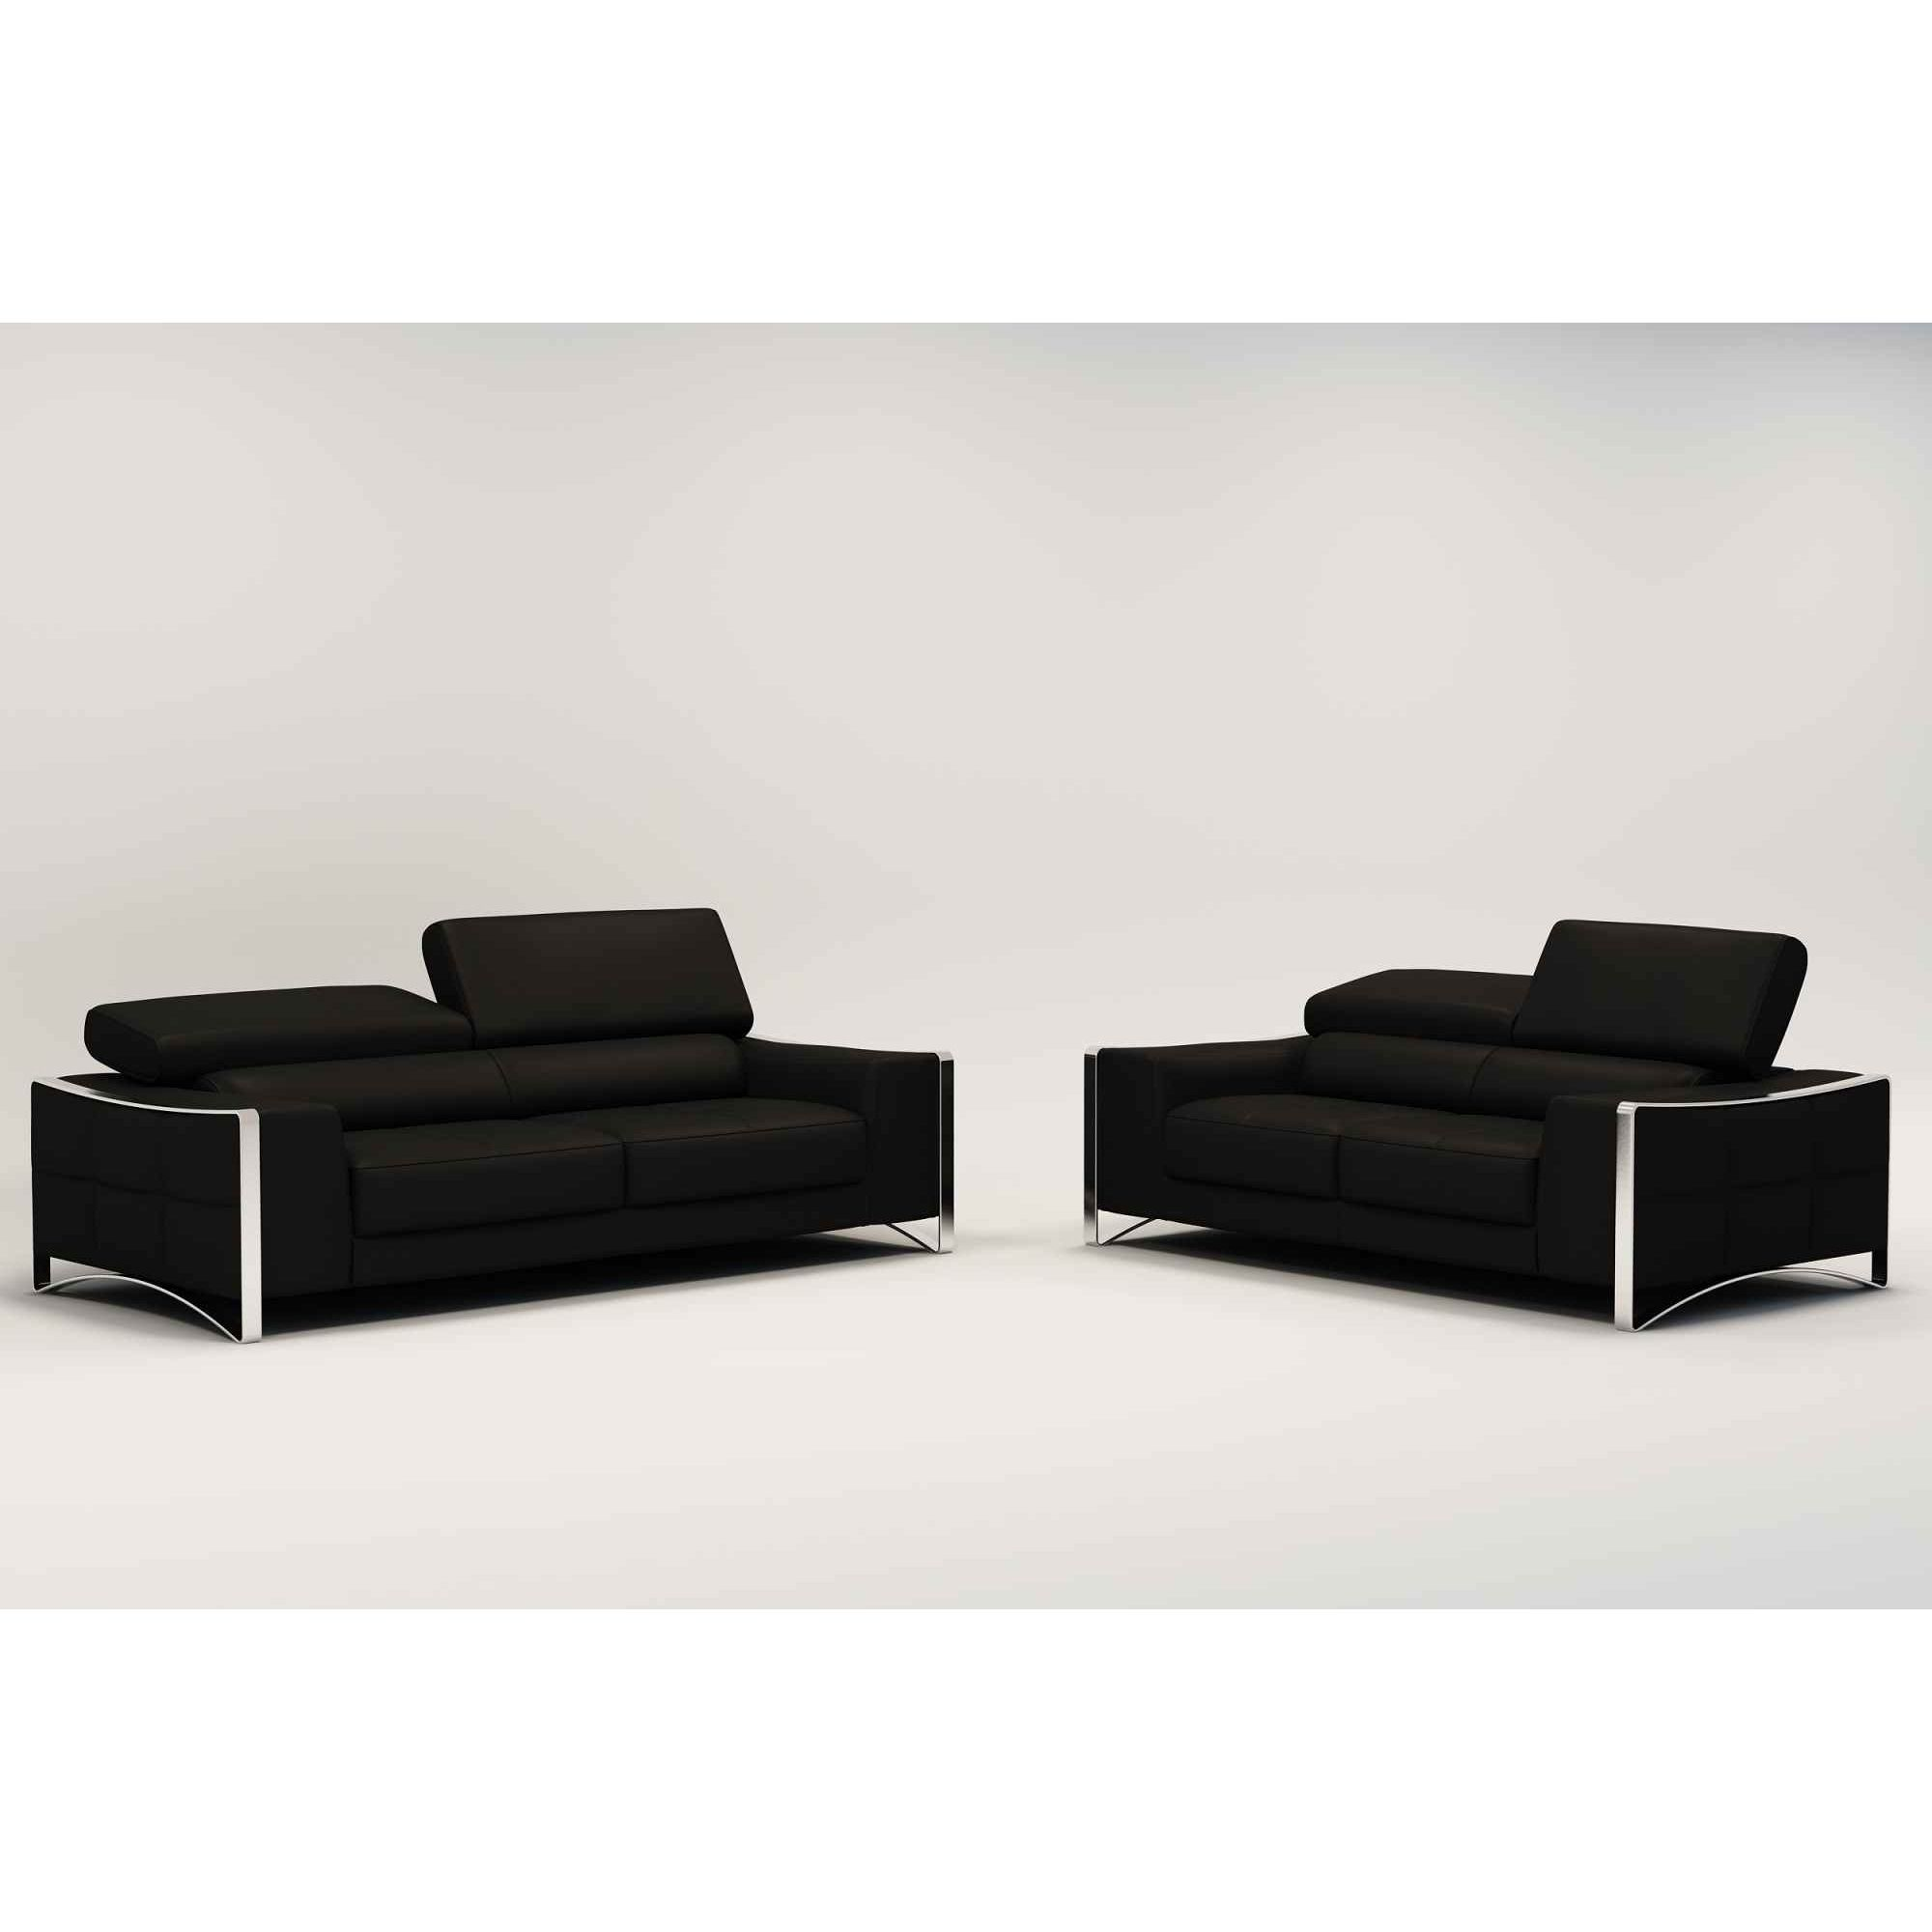 Deco in paris ensemble canape cuir 3 2 places noir - Canape 3 et 2 places ...